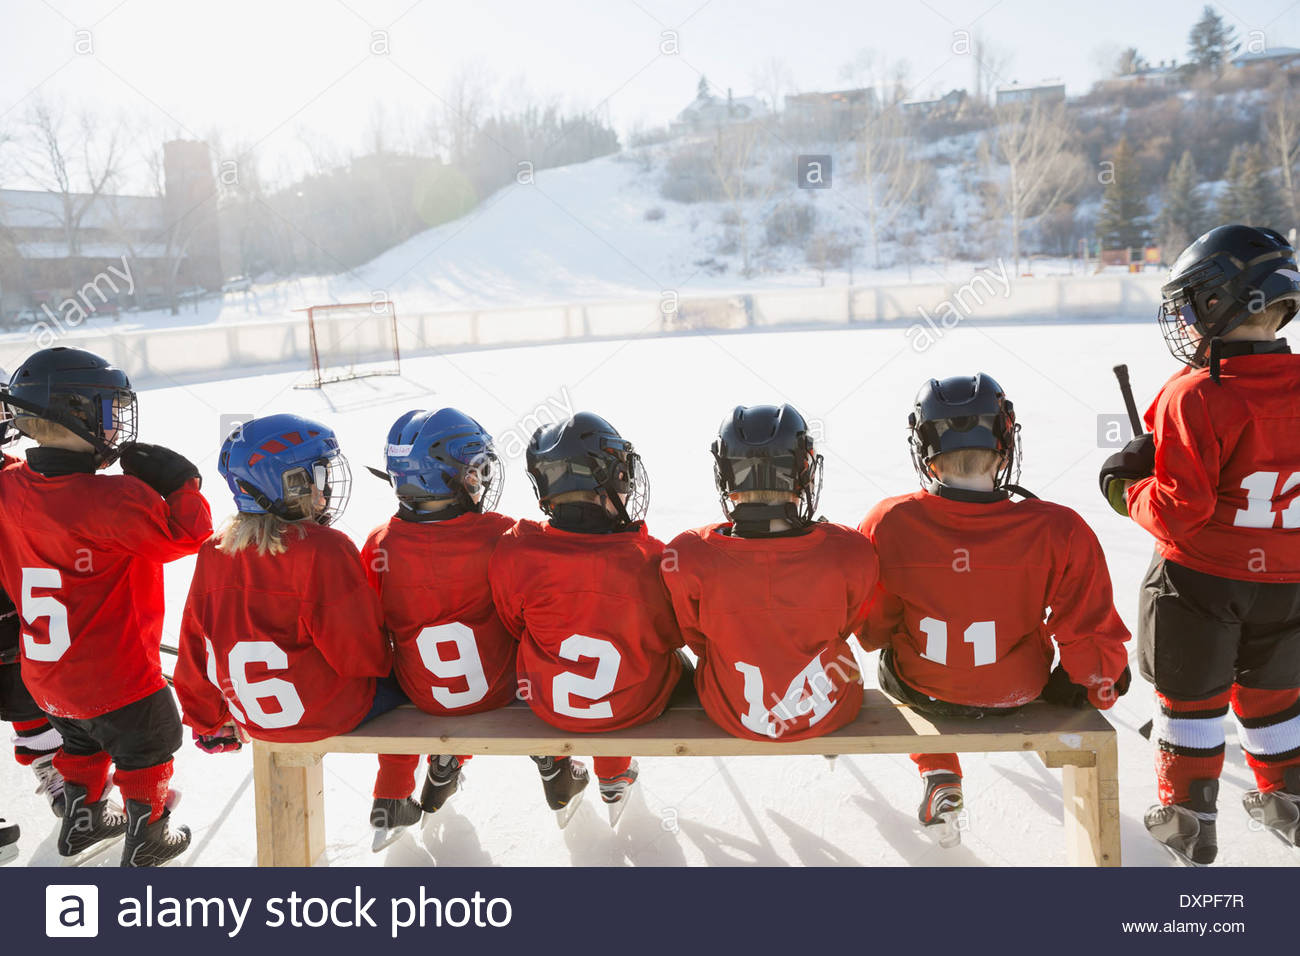 Rear view of ice hockey team sitting on bench - Stock Image